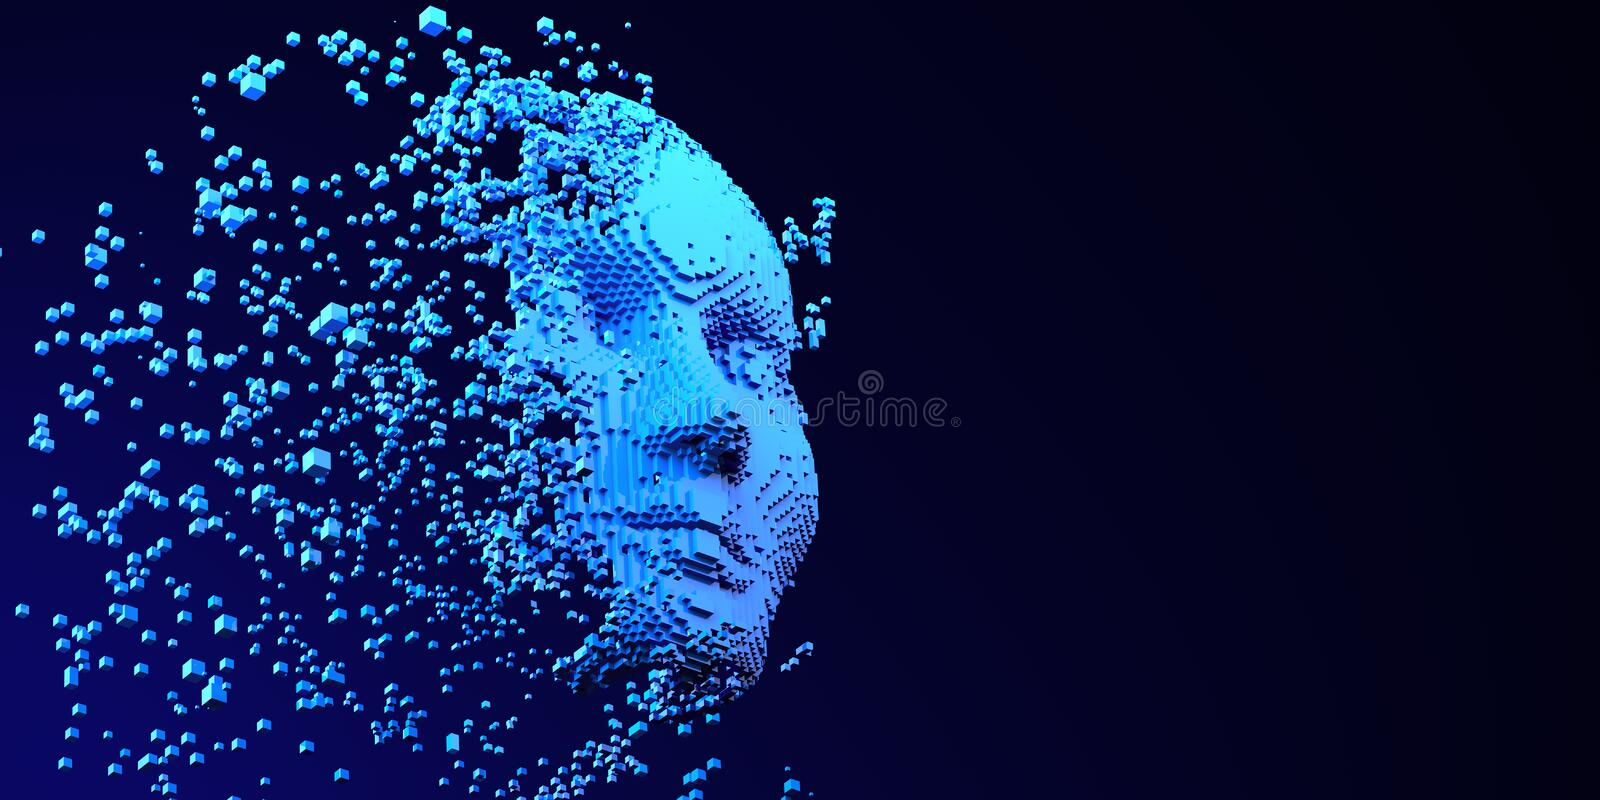 Brain AI Artificial intelligence Machine Learning Abstract Head Business Internet Technology Concept stock illustration